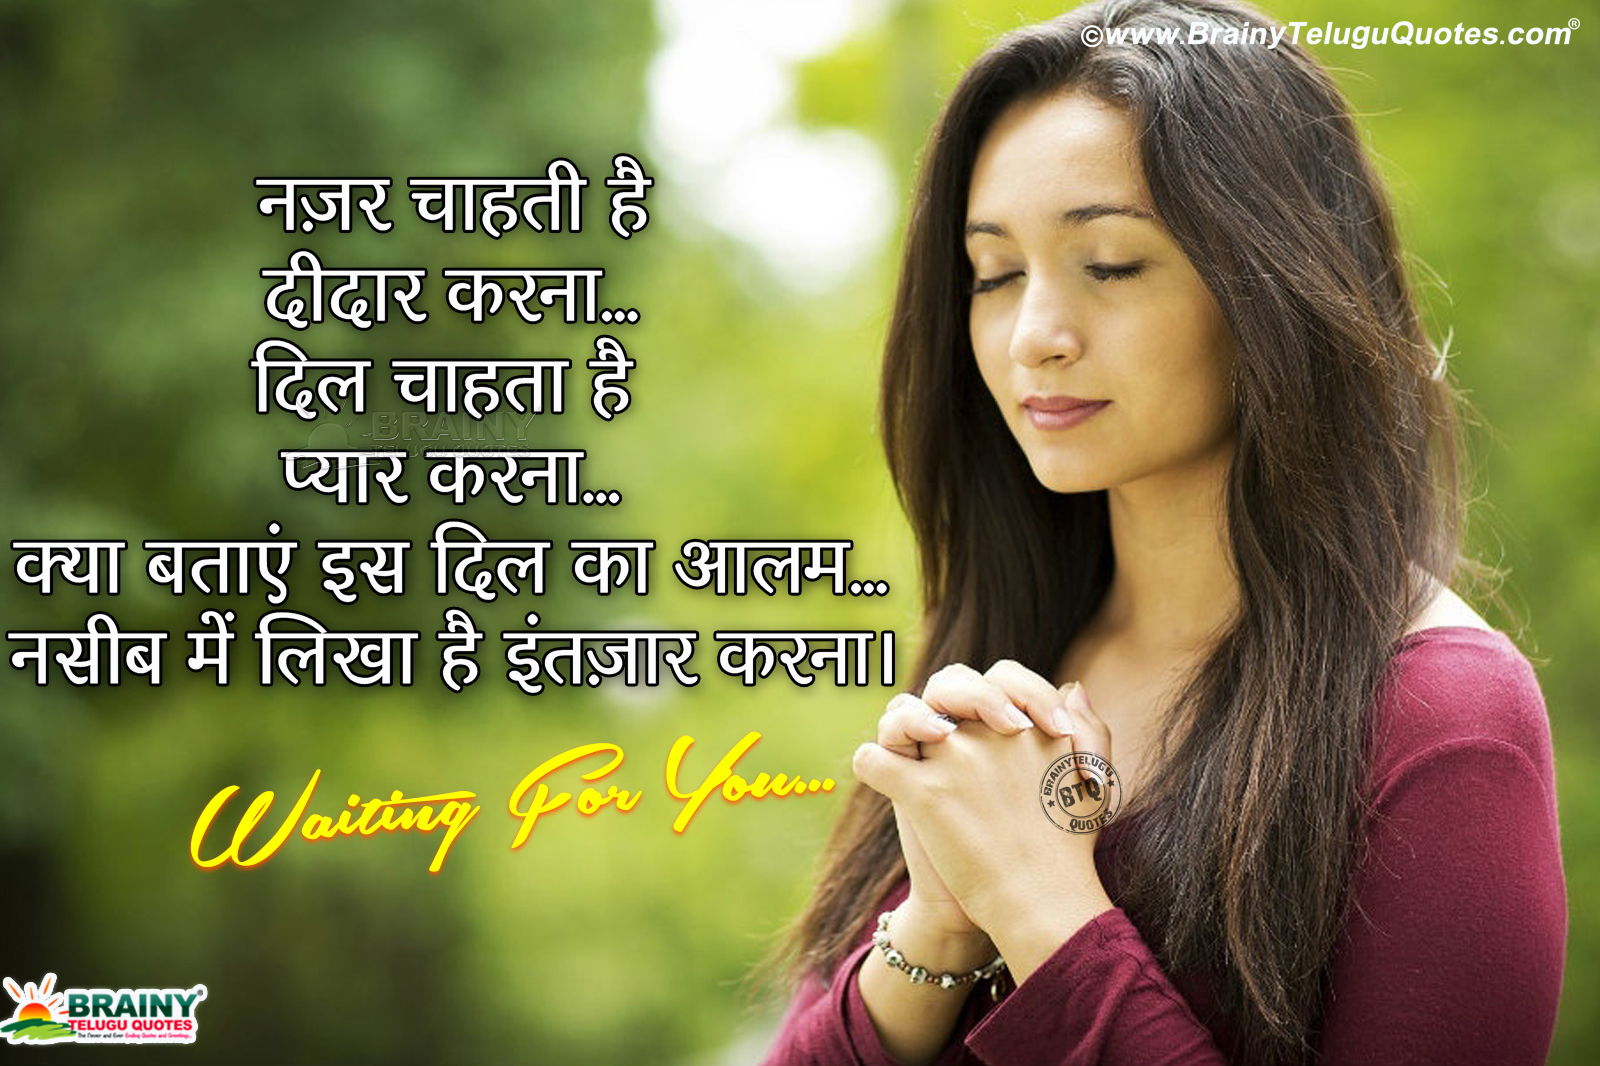 Hindi Waiting For You Quotes Hd Wallpapers In Hindi Love Messages